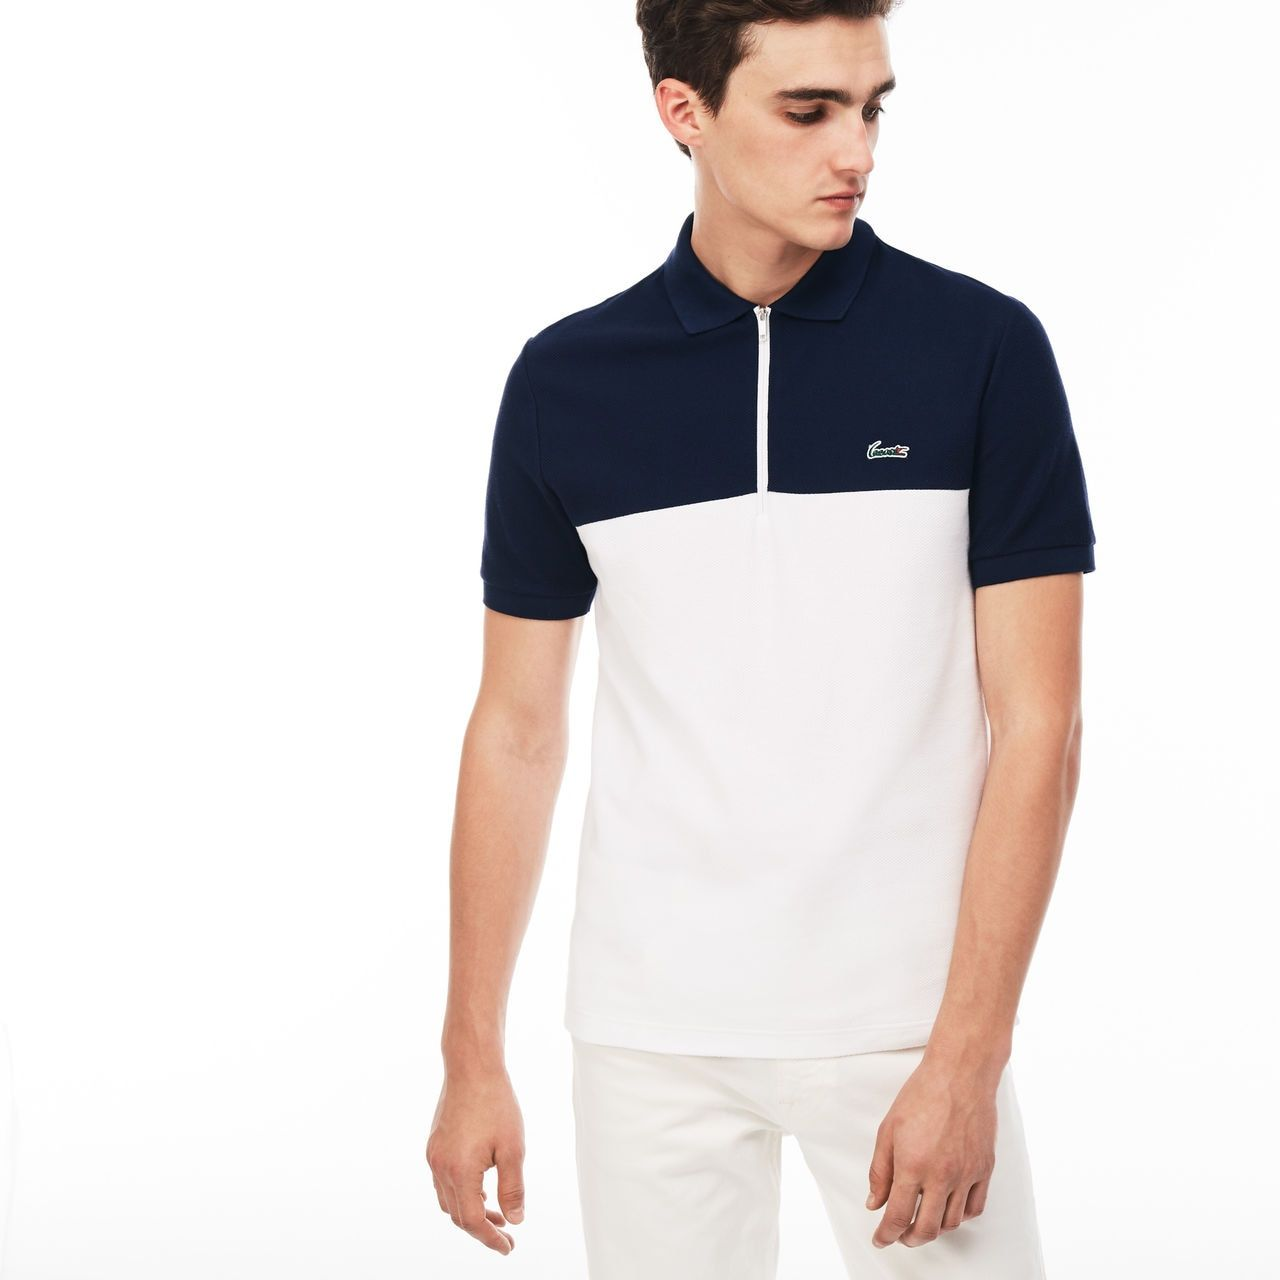 820917391781 Lacoste Slim Fit Mens Polo Shirt - Cotswold Hire